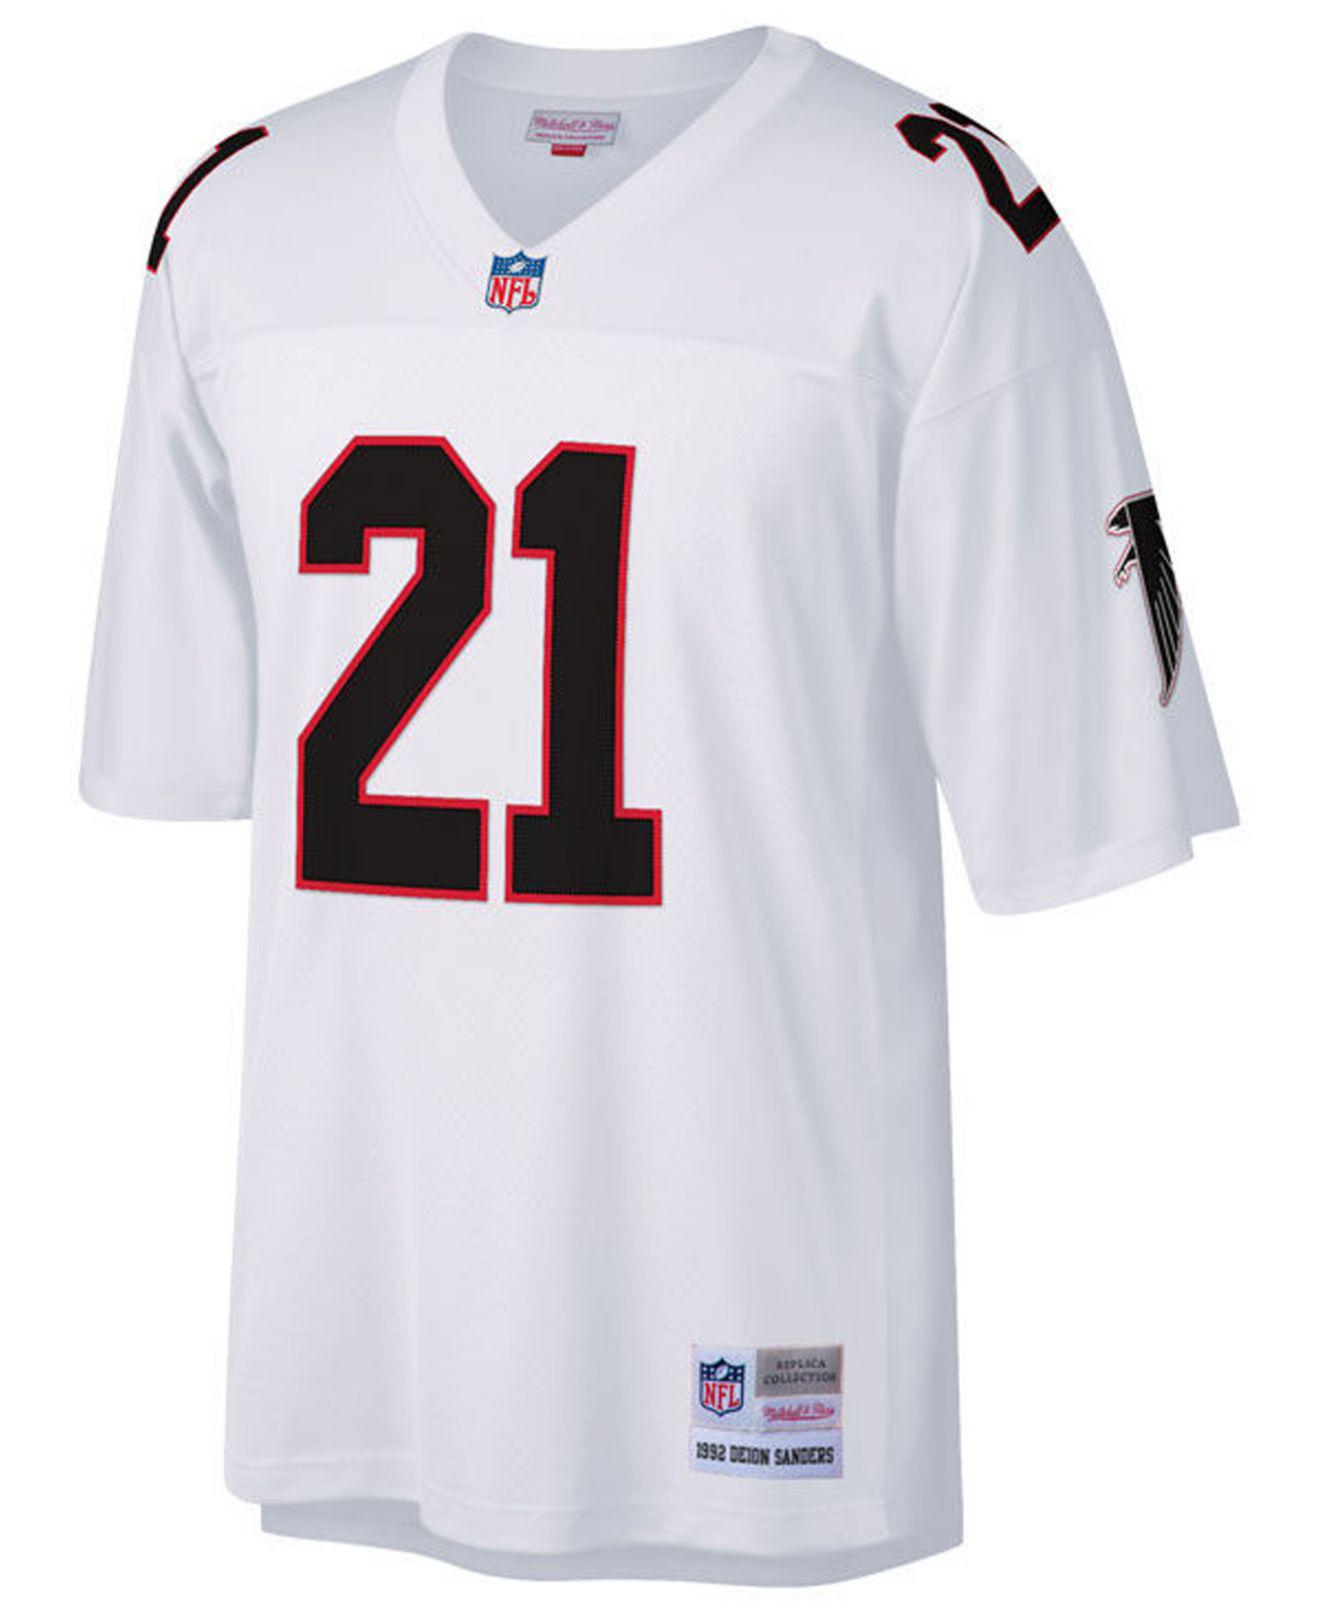 3d6f8a9e03a Mitchell   Ness Deion Sanders Atlanta Falcons Replica Throwback Jersey in  White for Men - Lyst